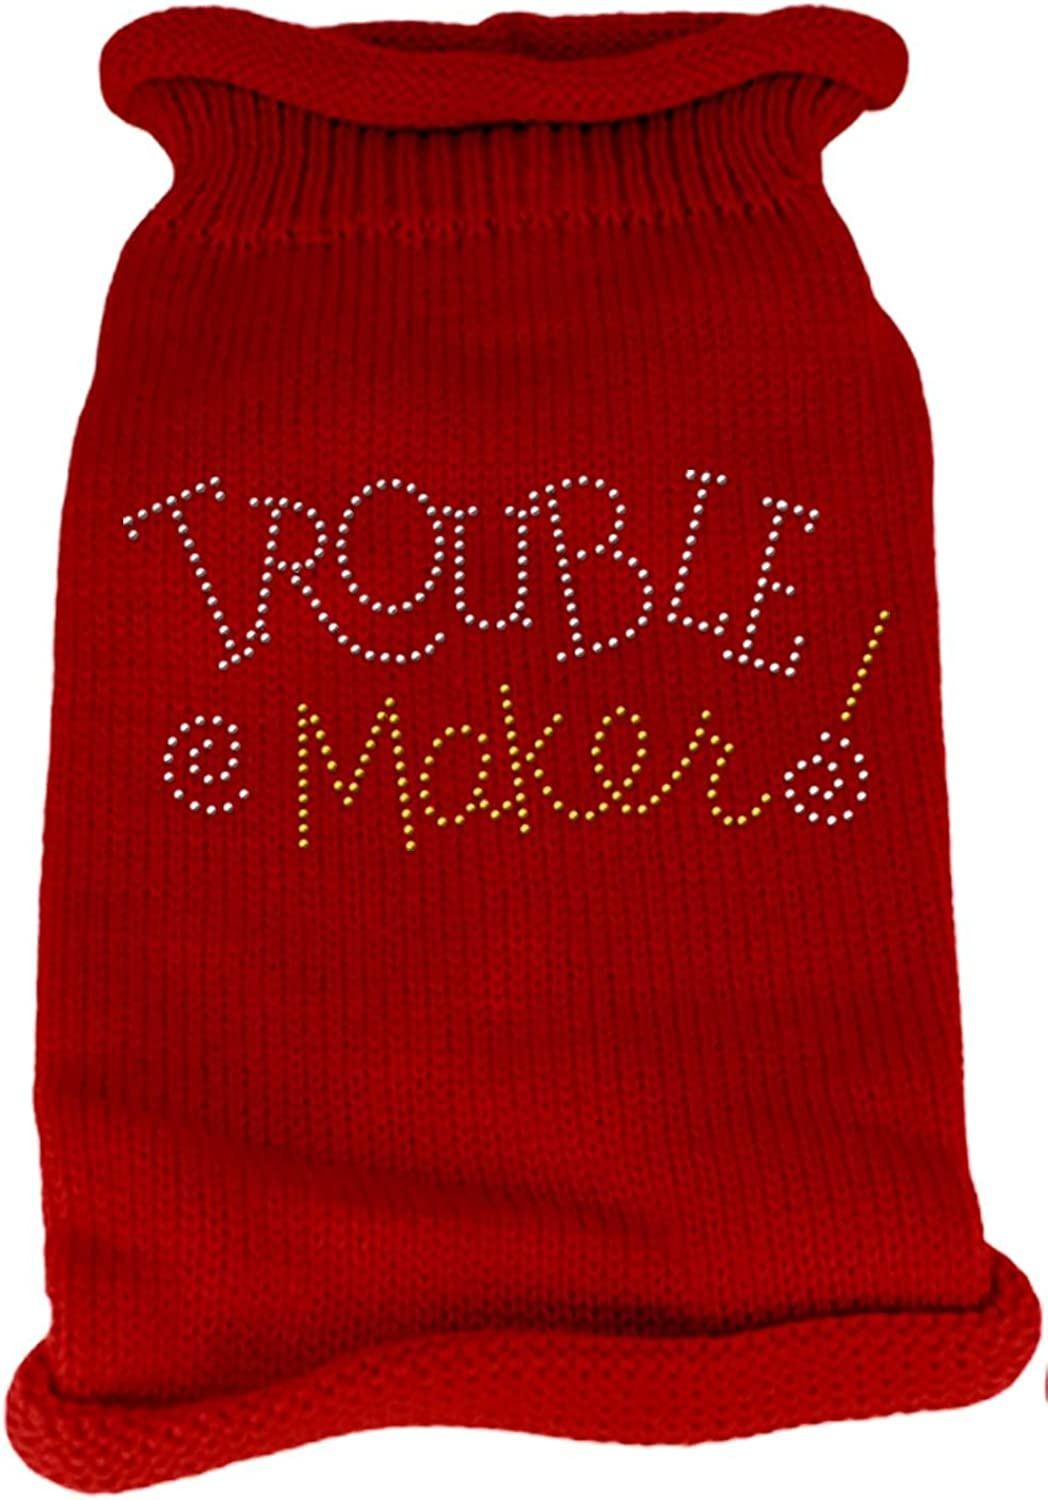 Mirage Pet Products Trouble Maker Rhinestone Knit Pet Sweater, XLarge, Red